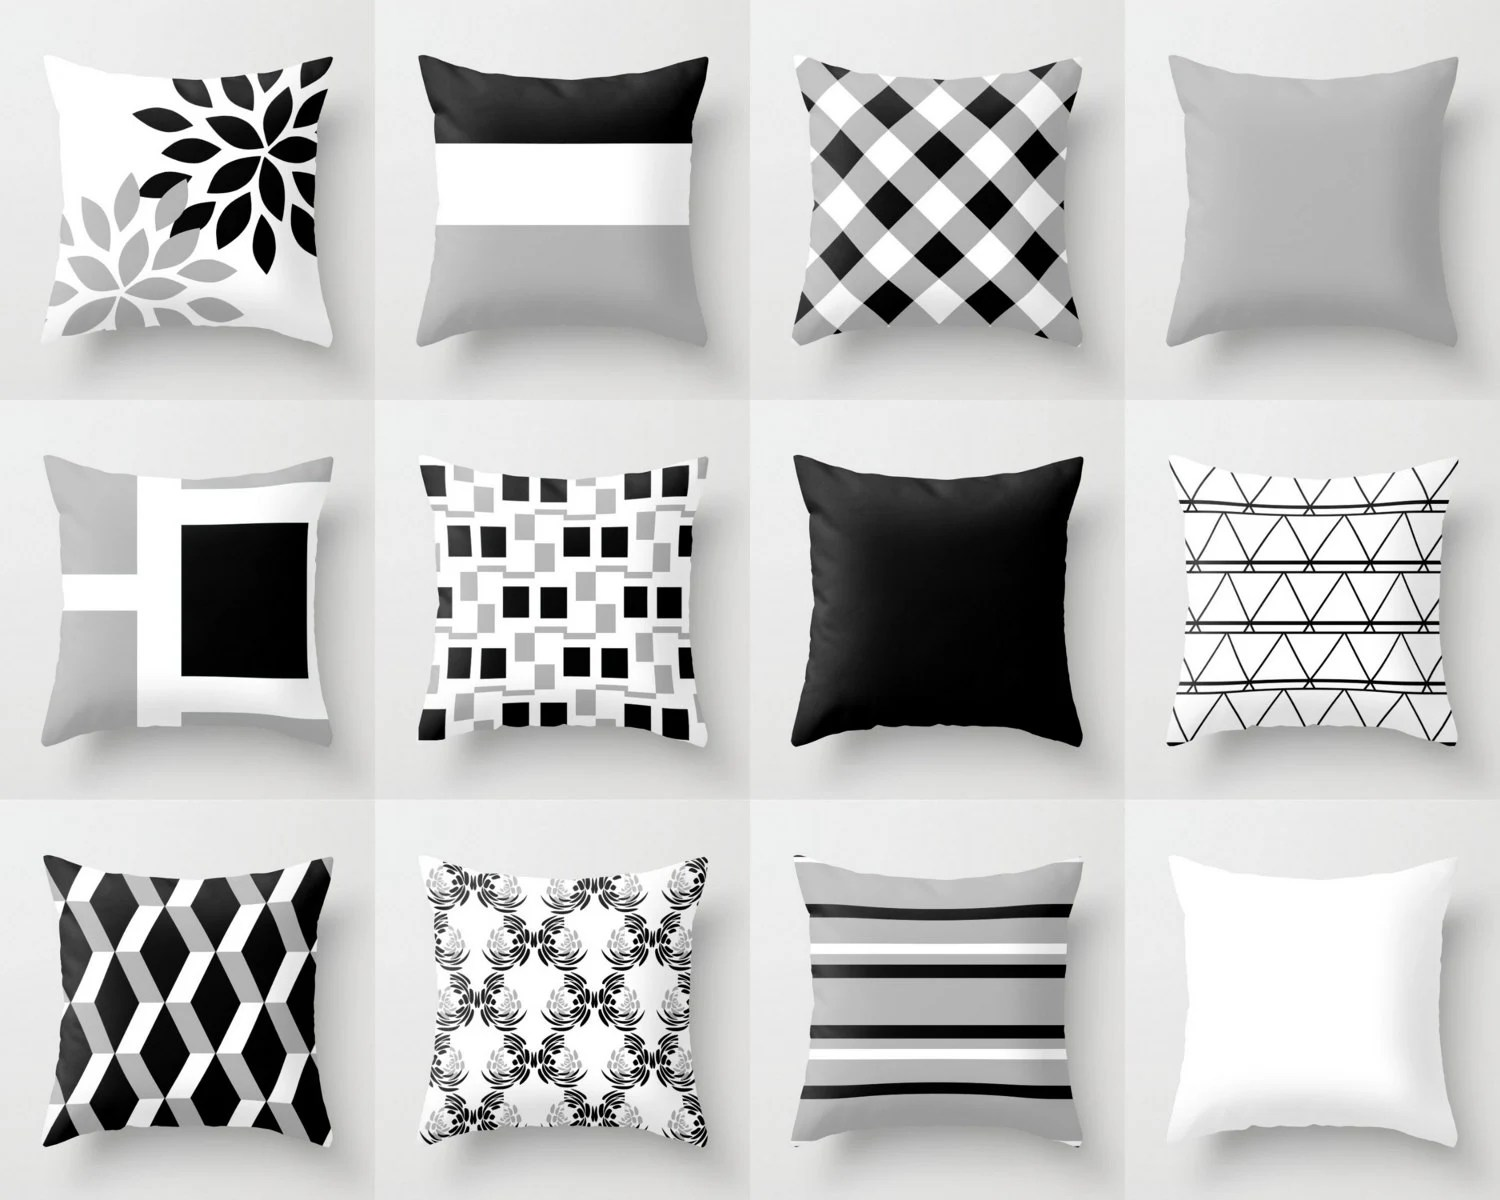 Throw Pillow Cover Black White Grey Couch Cushion Cover - Sofa Cushions Black And White